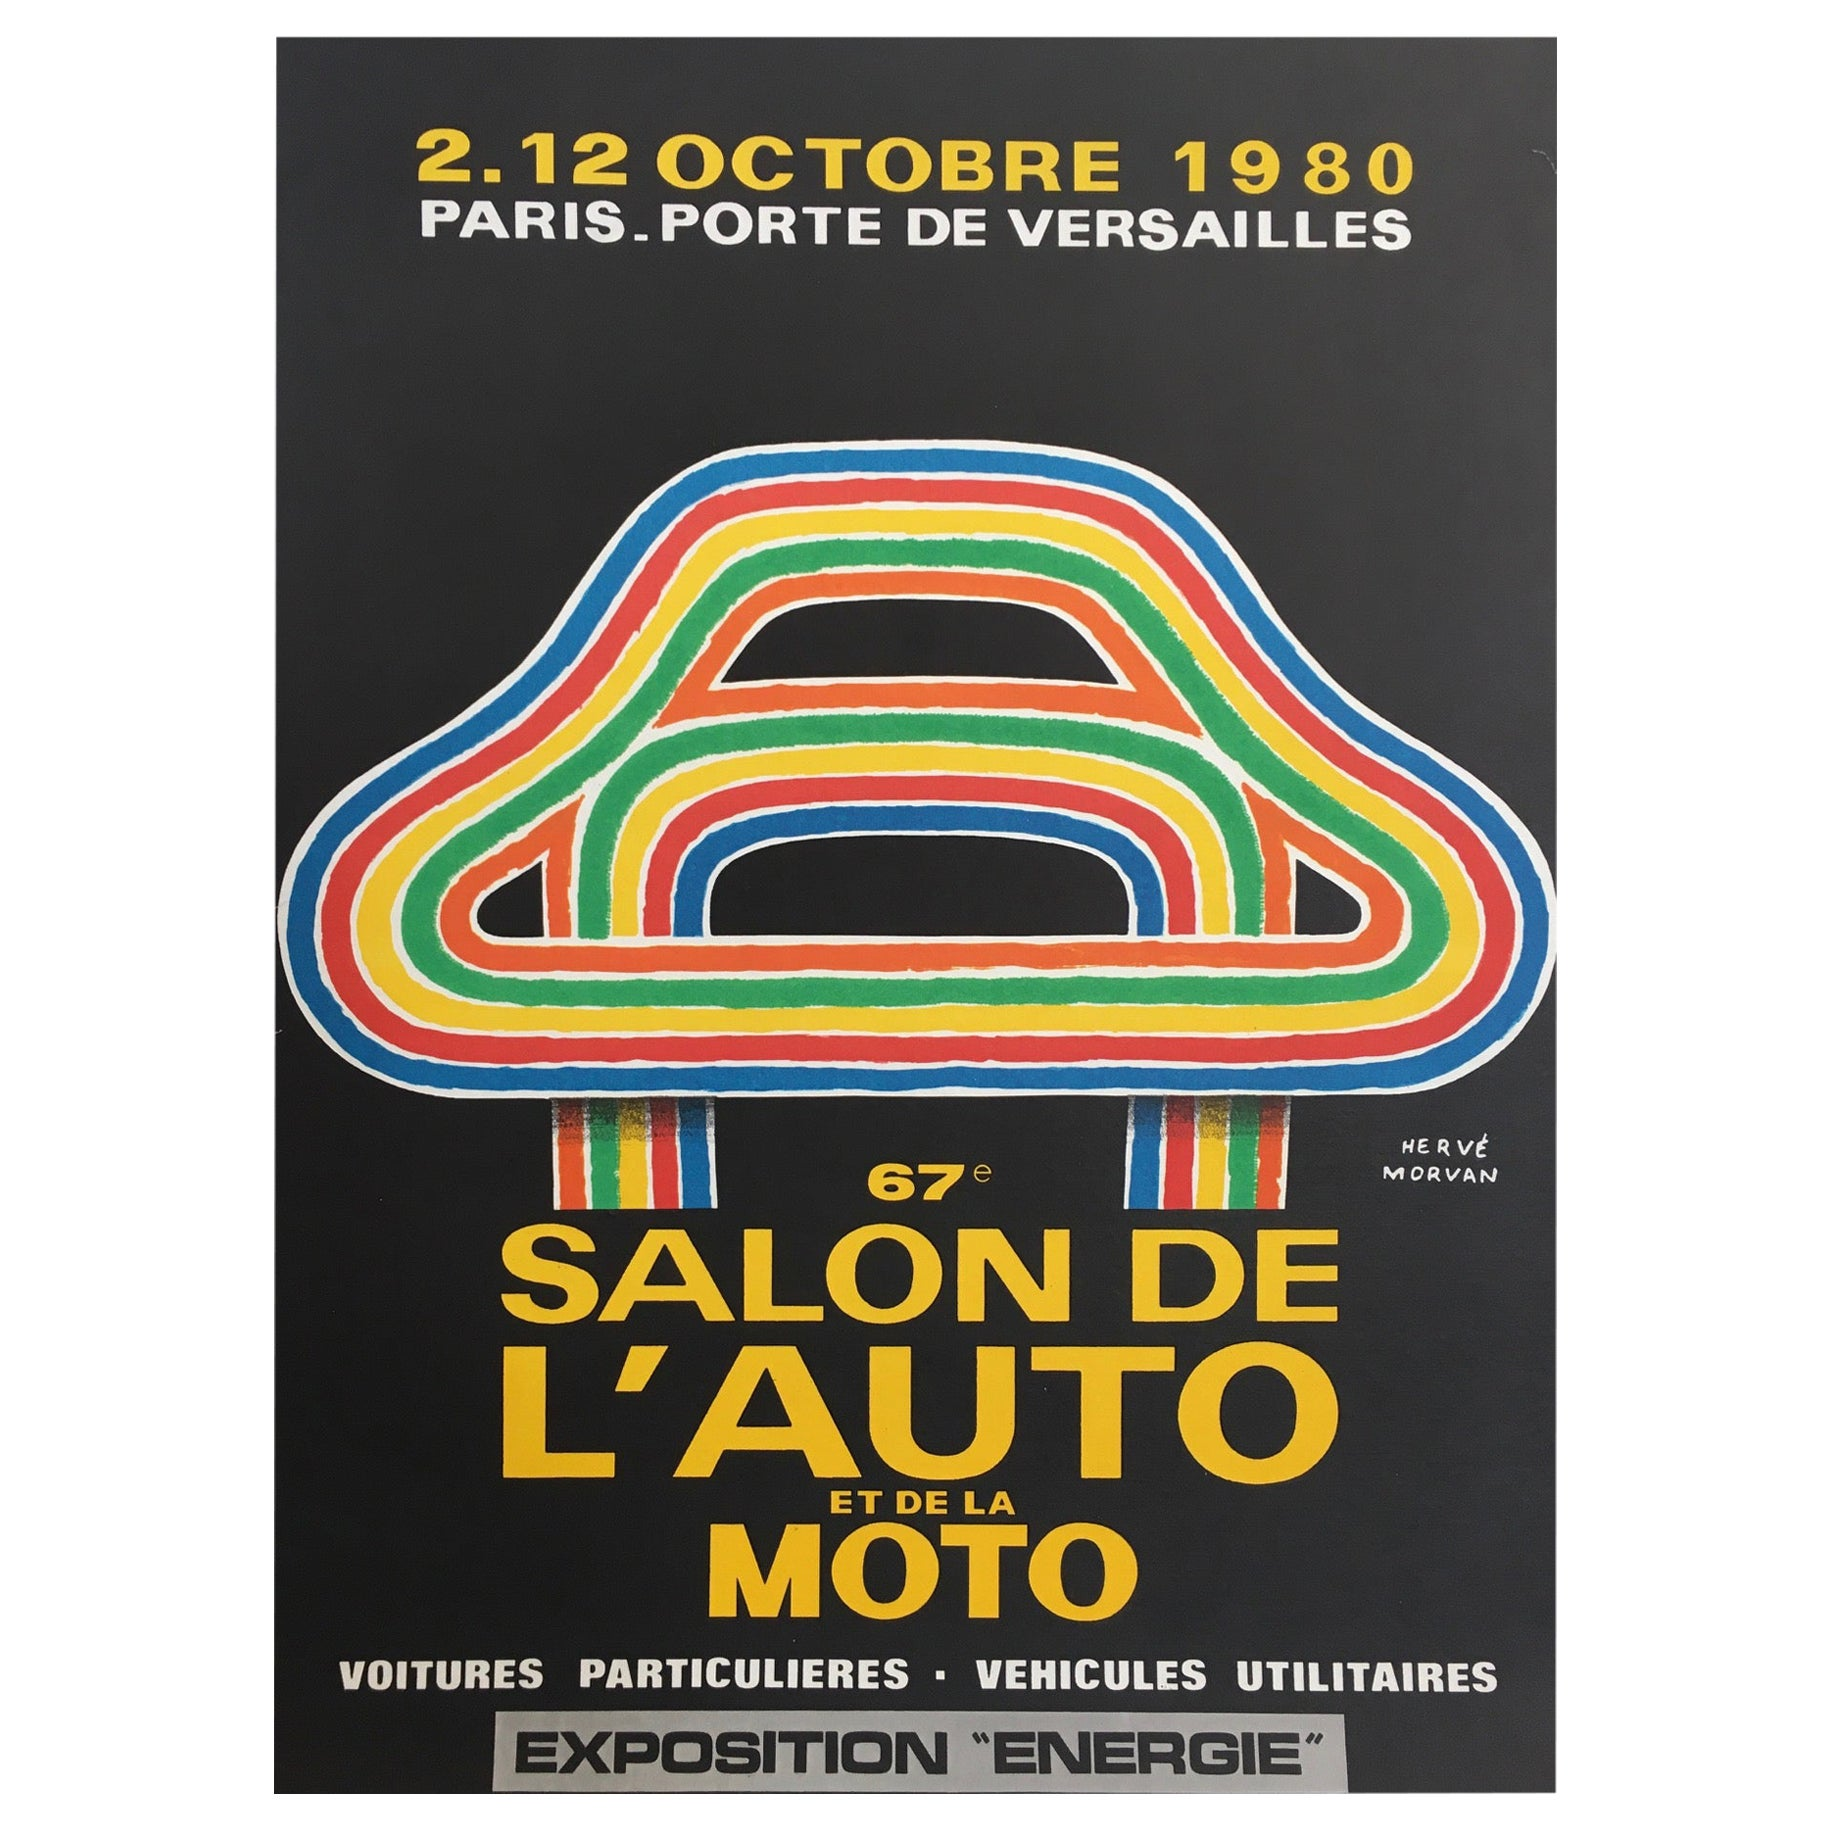 Herve Morvan, Original Vintage Poster, 'Auto and Motorcycle Show', 1980